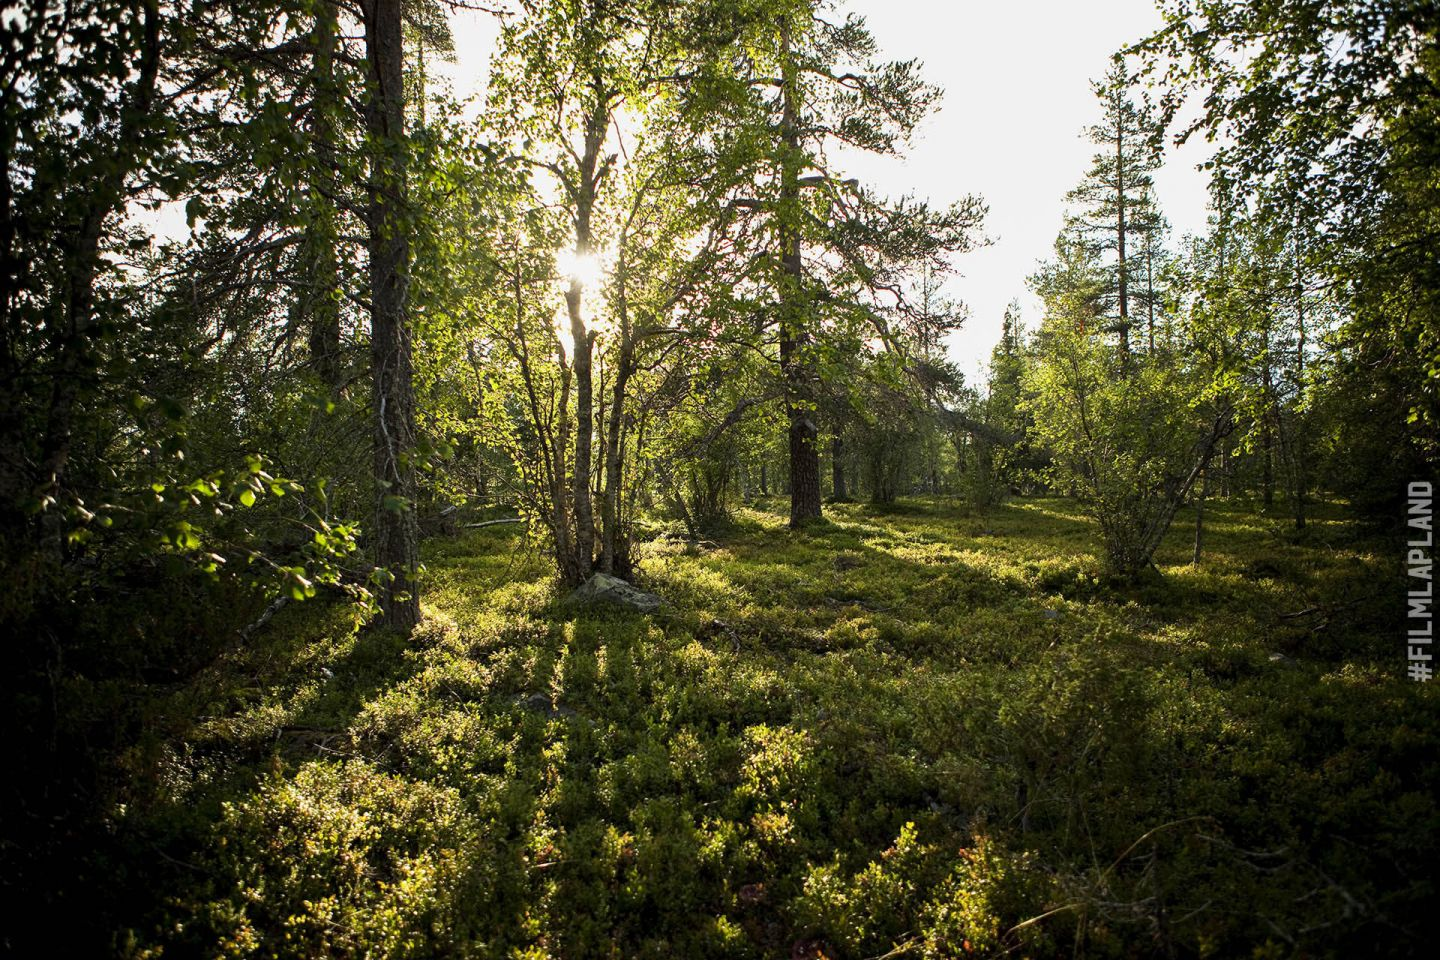 Summer sunlight and green forest in Sodankylä, Finland